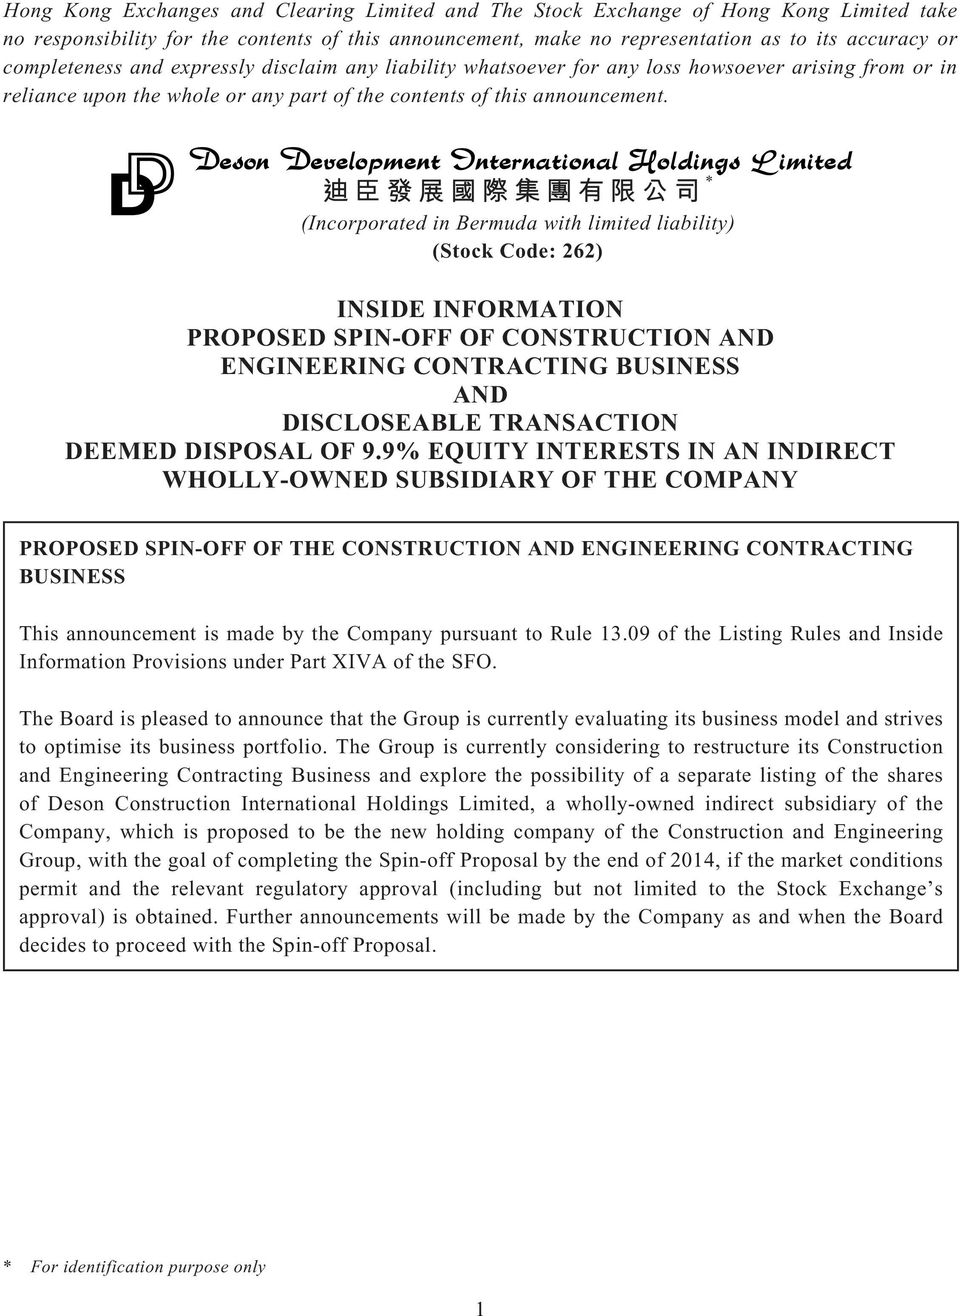 * (Incorporated in Bermuda with limited liability) (Stock Code: 262) INSIDE INFORMATION PROPOSED SPIN-OFF OF CONSTRUCTION AND ENGINEERING CONTRACTING BUSINESS AND DISCLOSEABLE TRANSACTION DEEMED